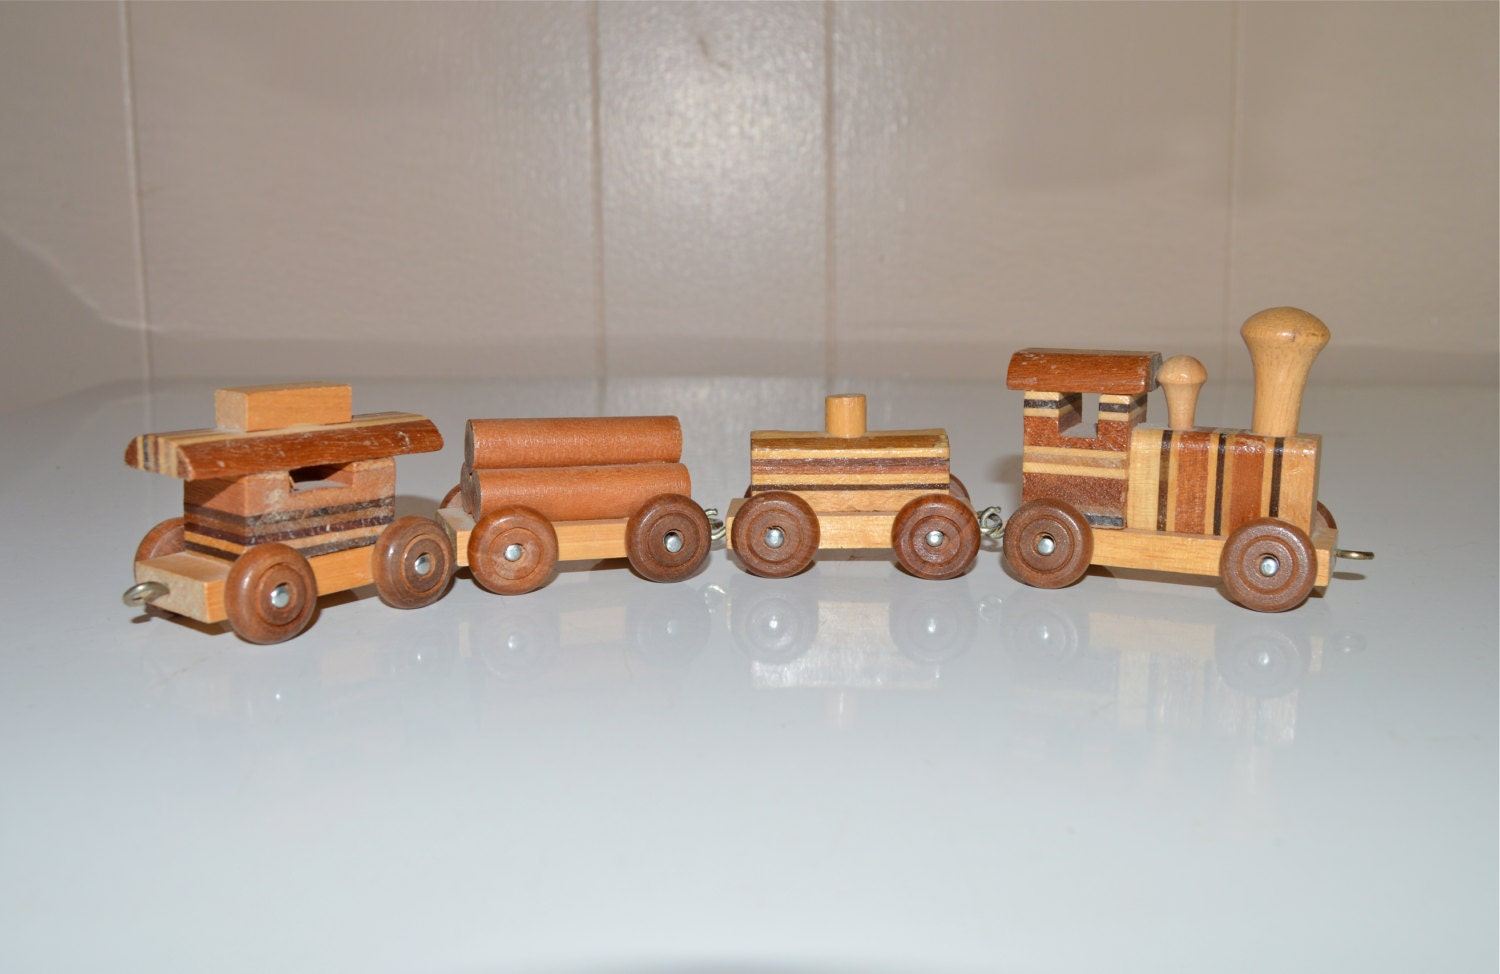 Wooden Toy Trains : Wood toy train piece engine cars caboose vintage